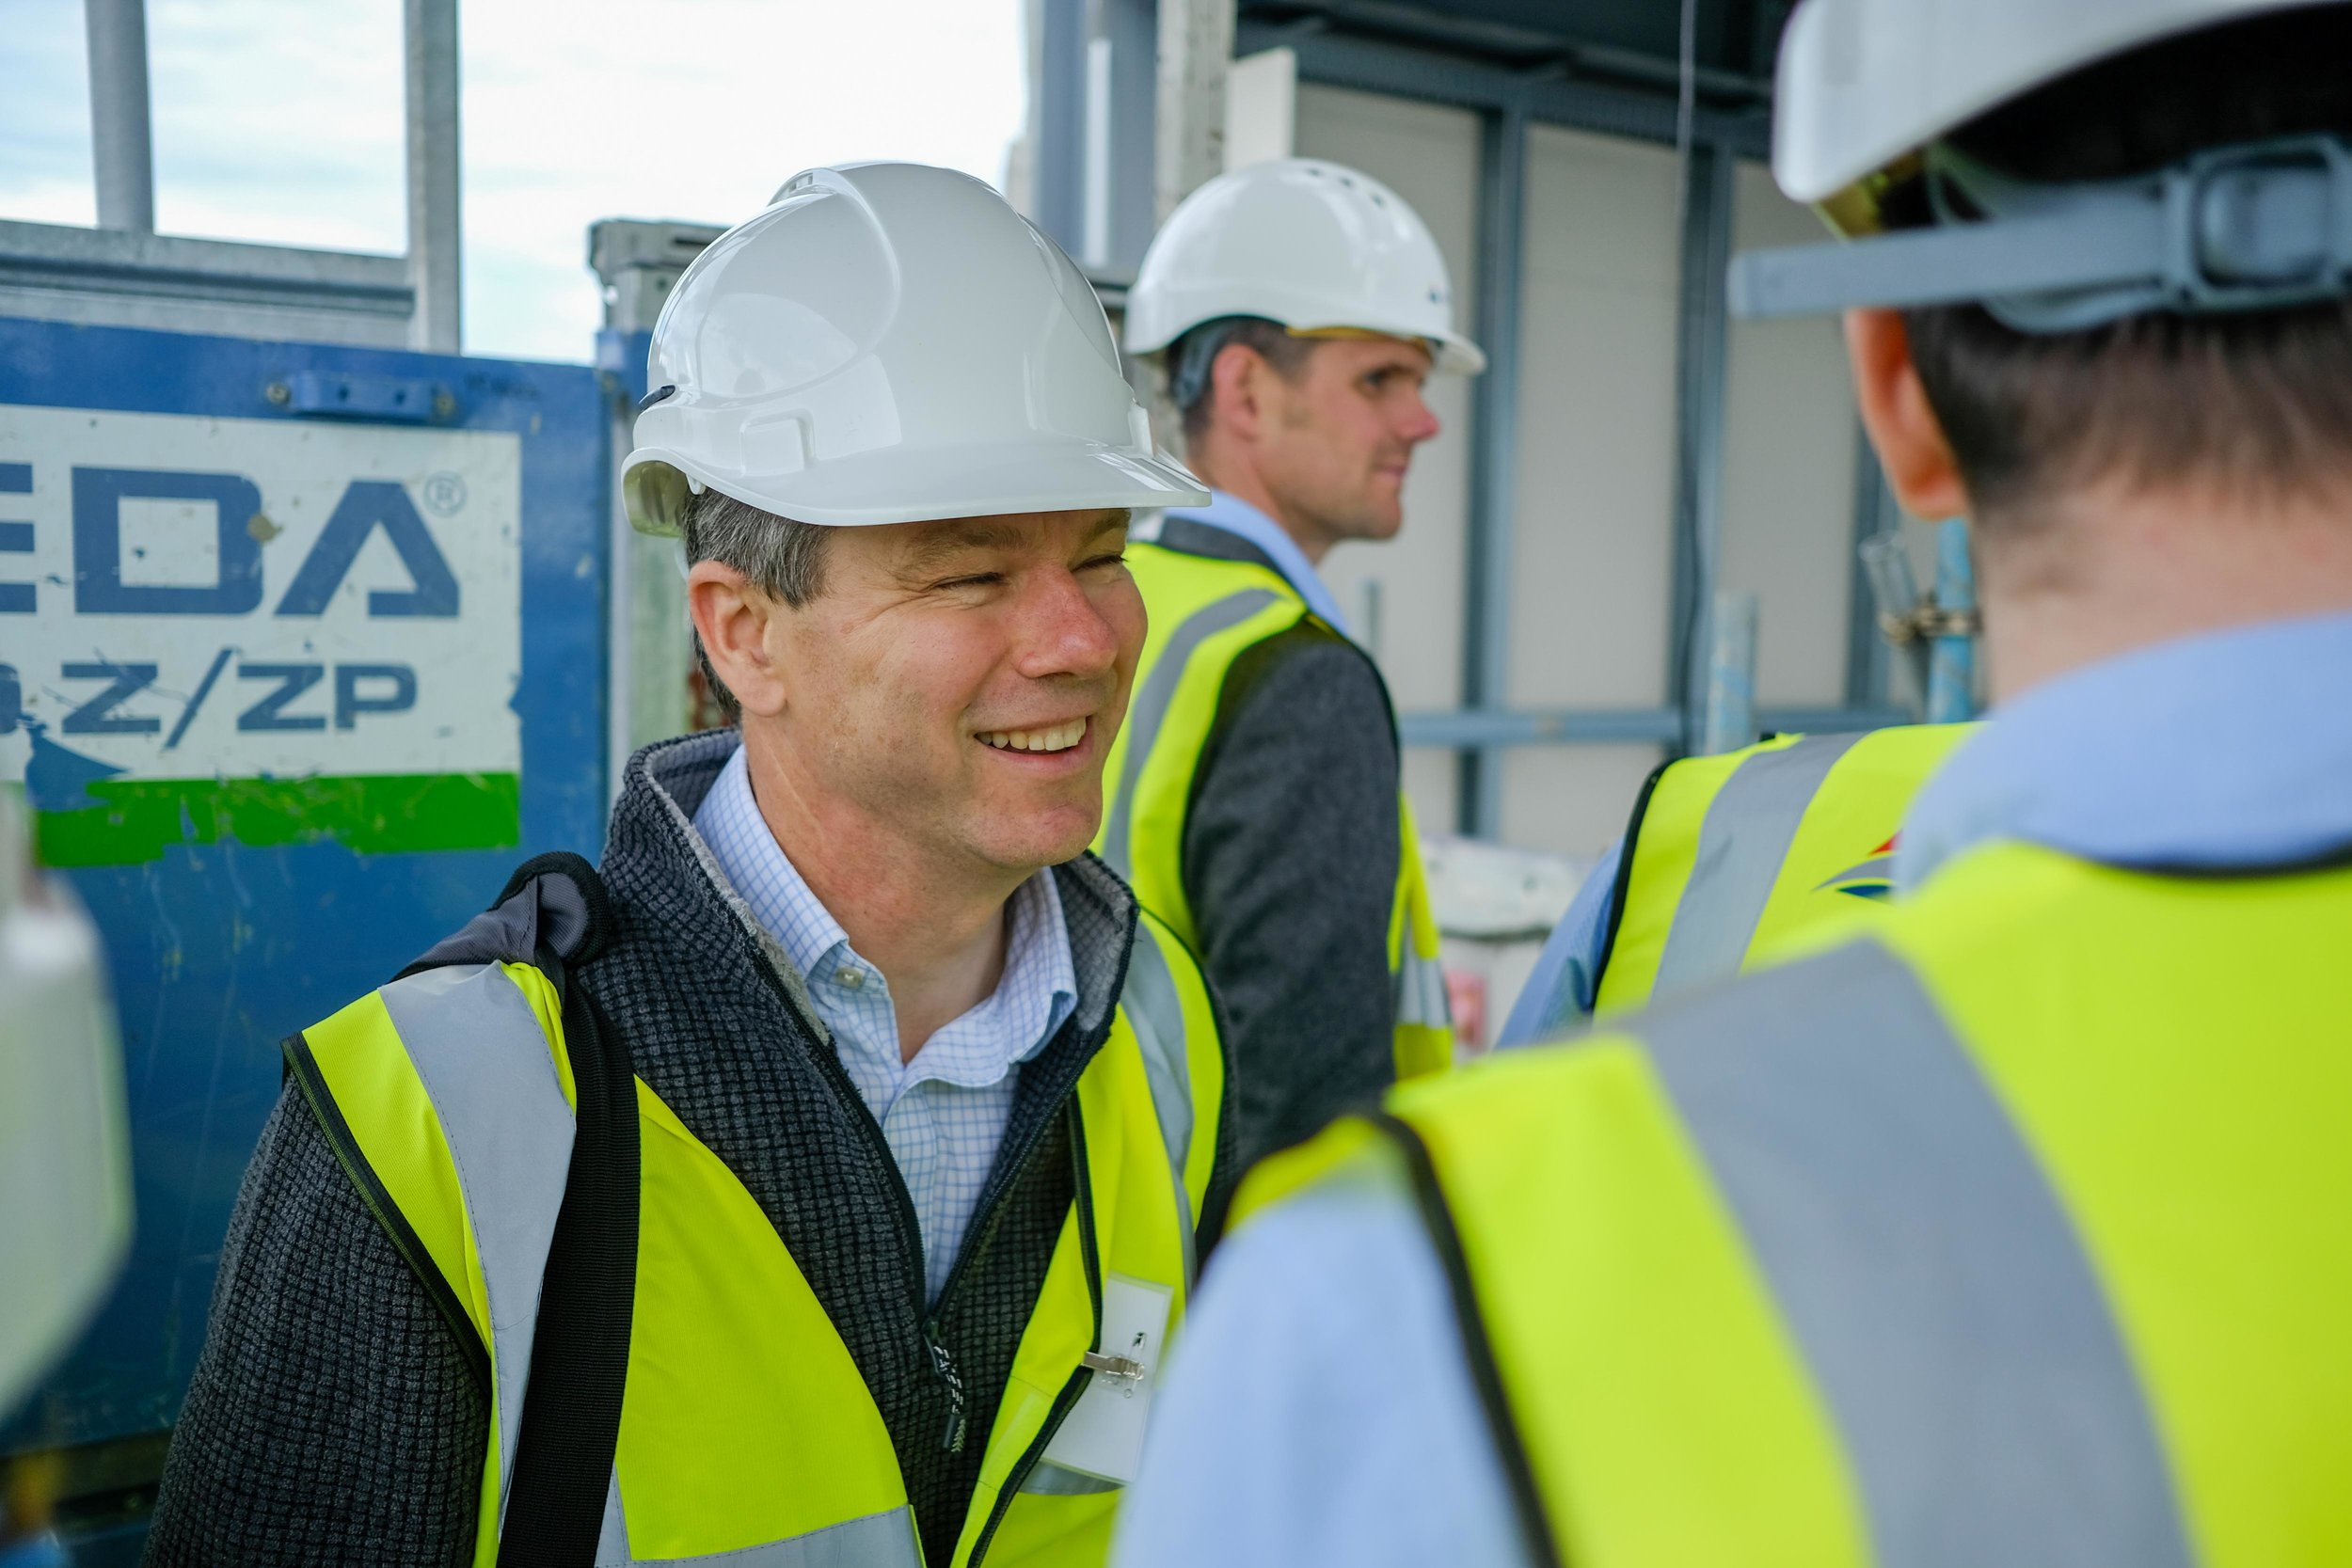 Stanhope House Topping Out 28.05.19 - Solent Sky Services--44.JPG